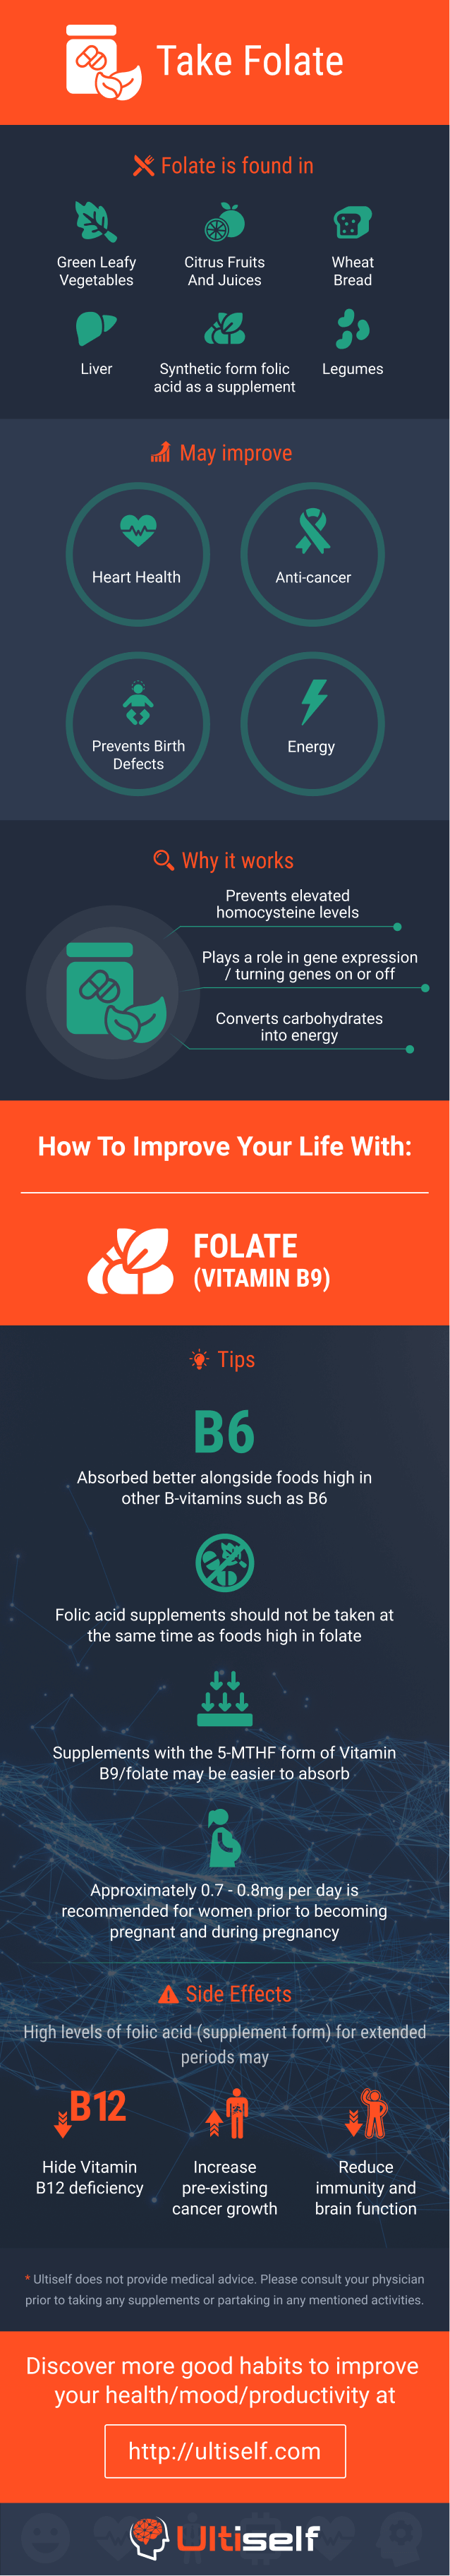 Take folate infographic